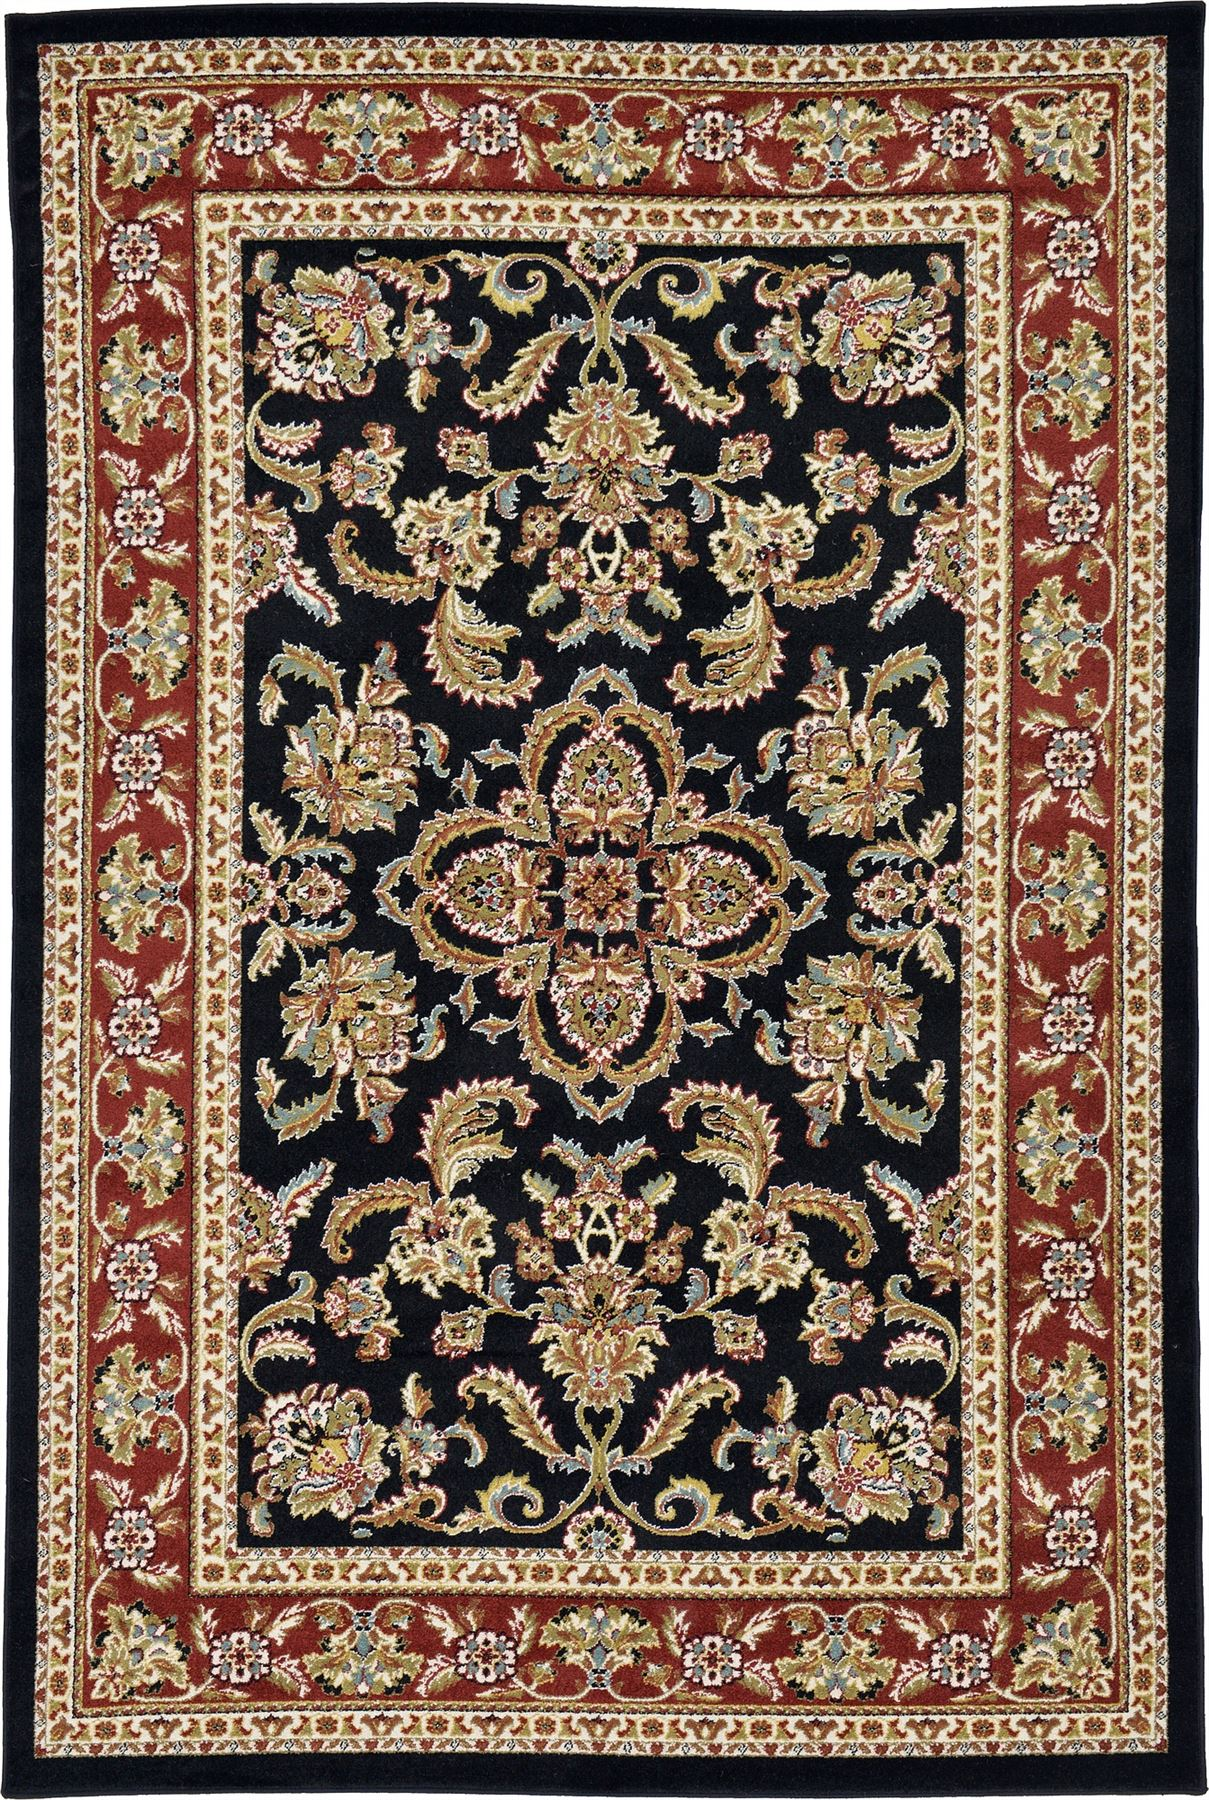 Traditional rug new area rug oriental rug persian rug new for Area carpets and rugs